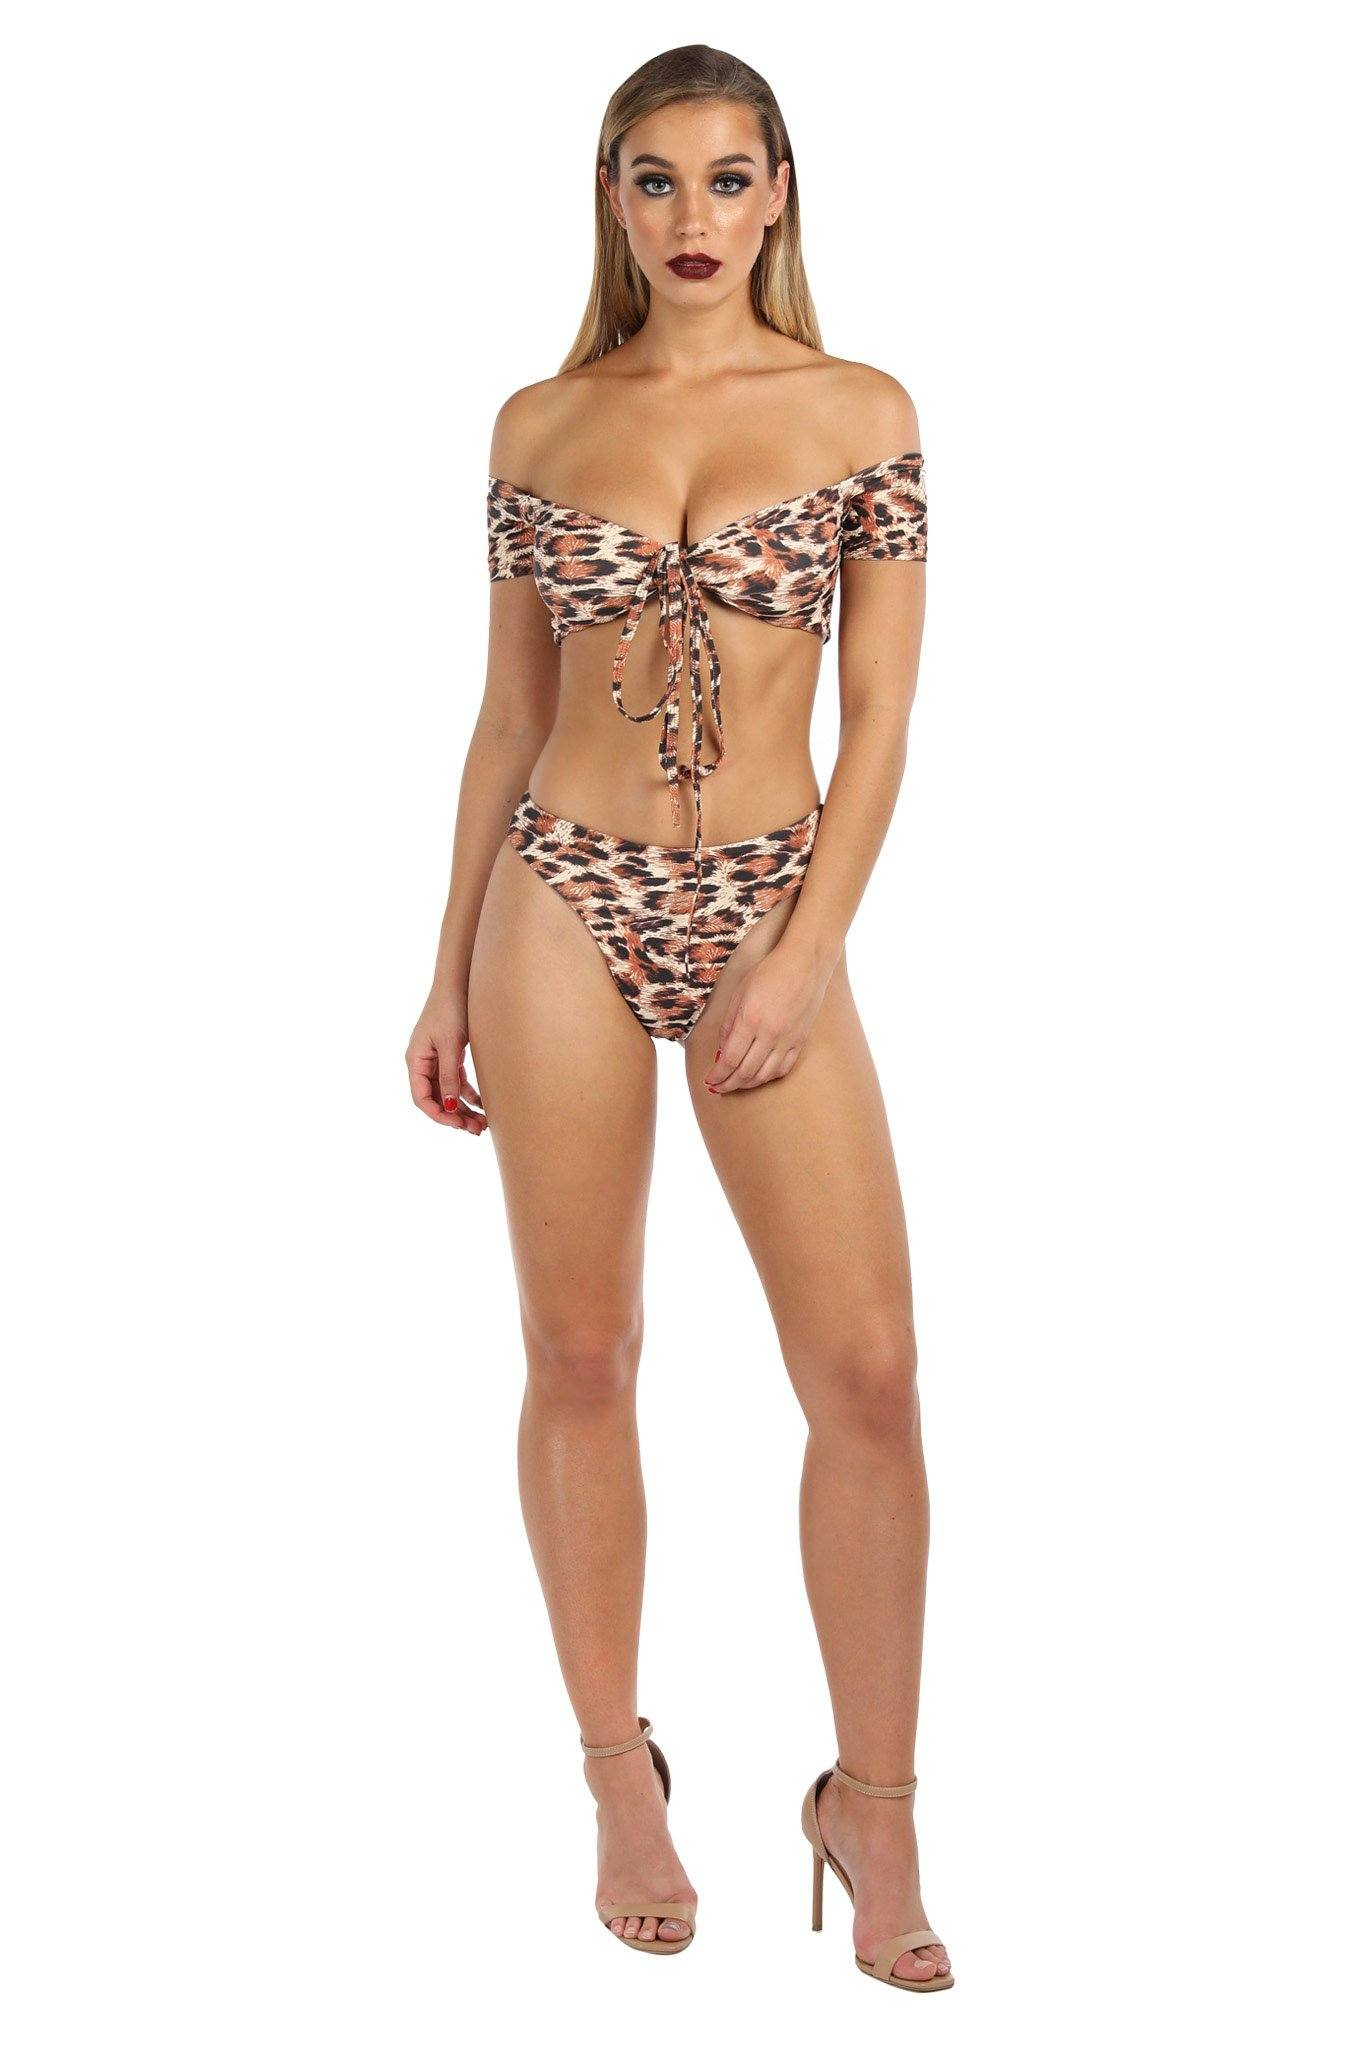 Leopard-print bikini set including off-shoulder bikini top with cap sleeves and cheeky bikini bottom